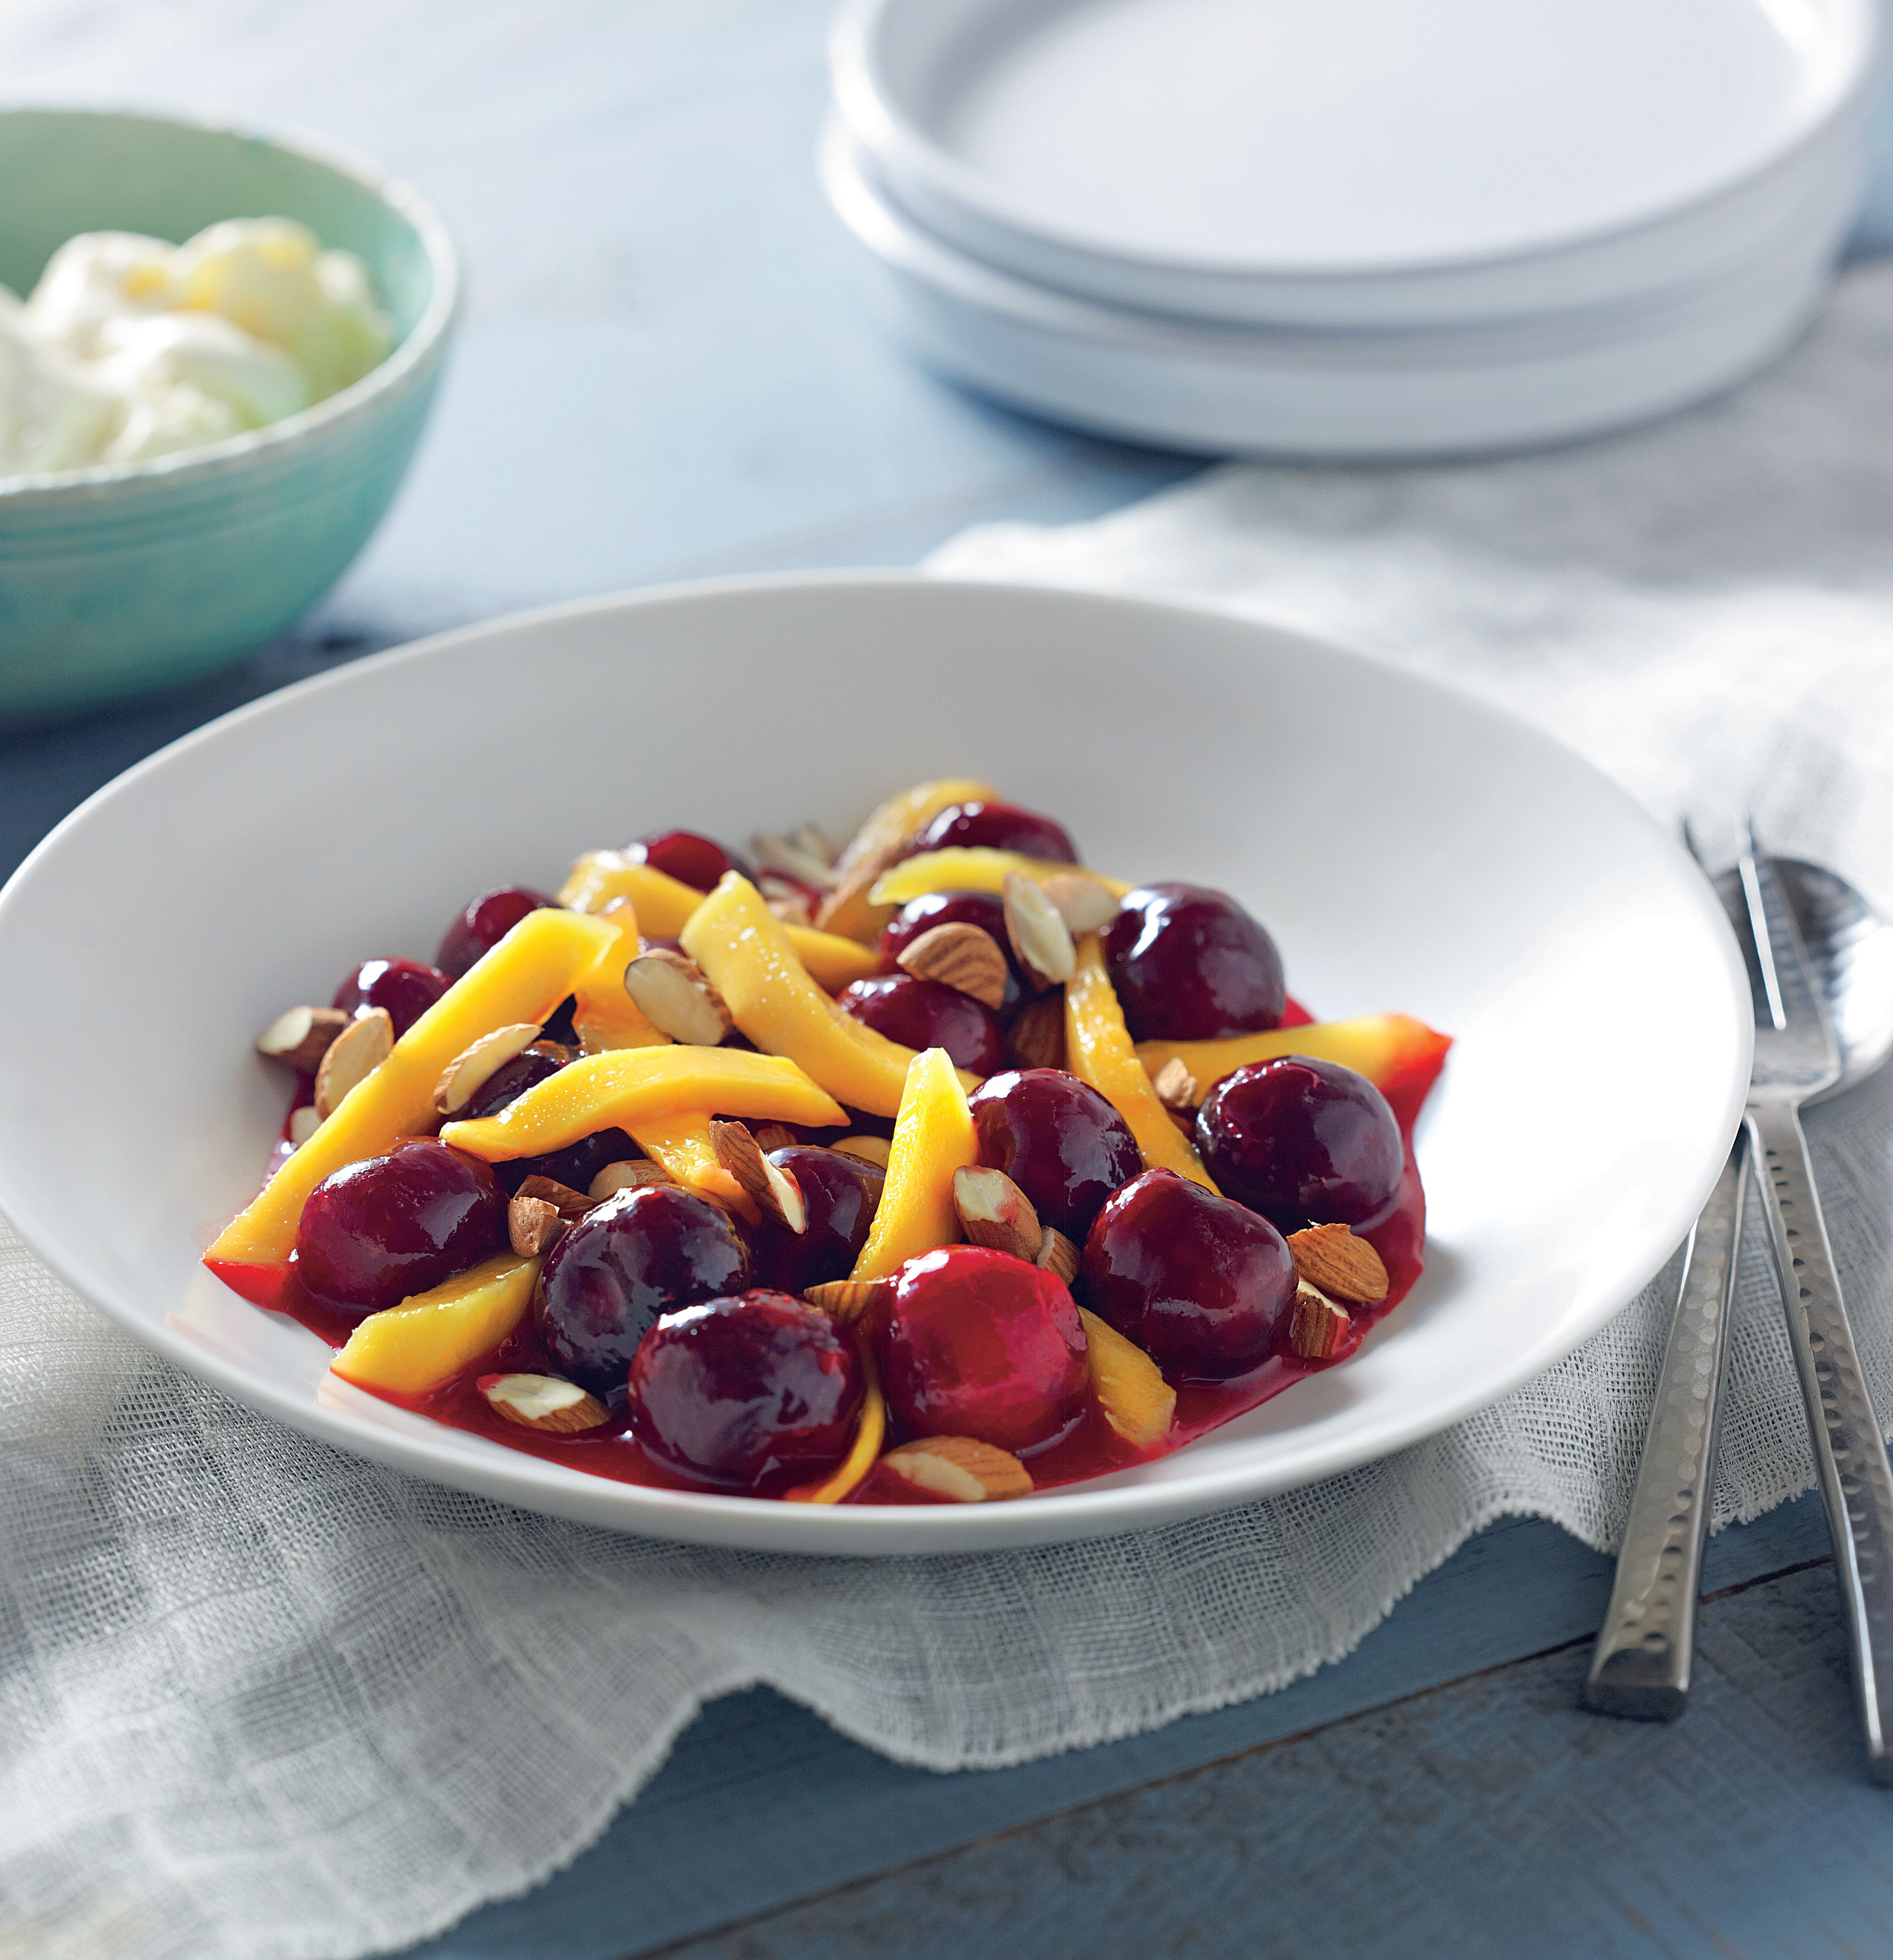 Cherry and mango fruit salad